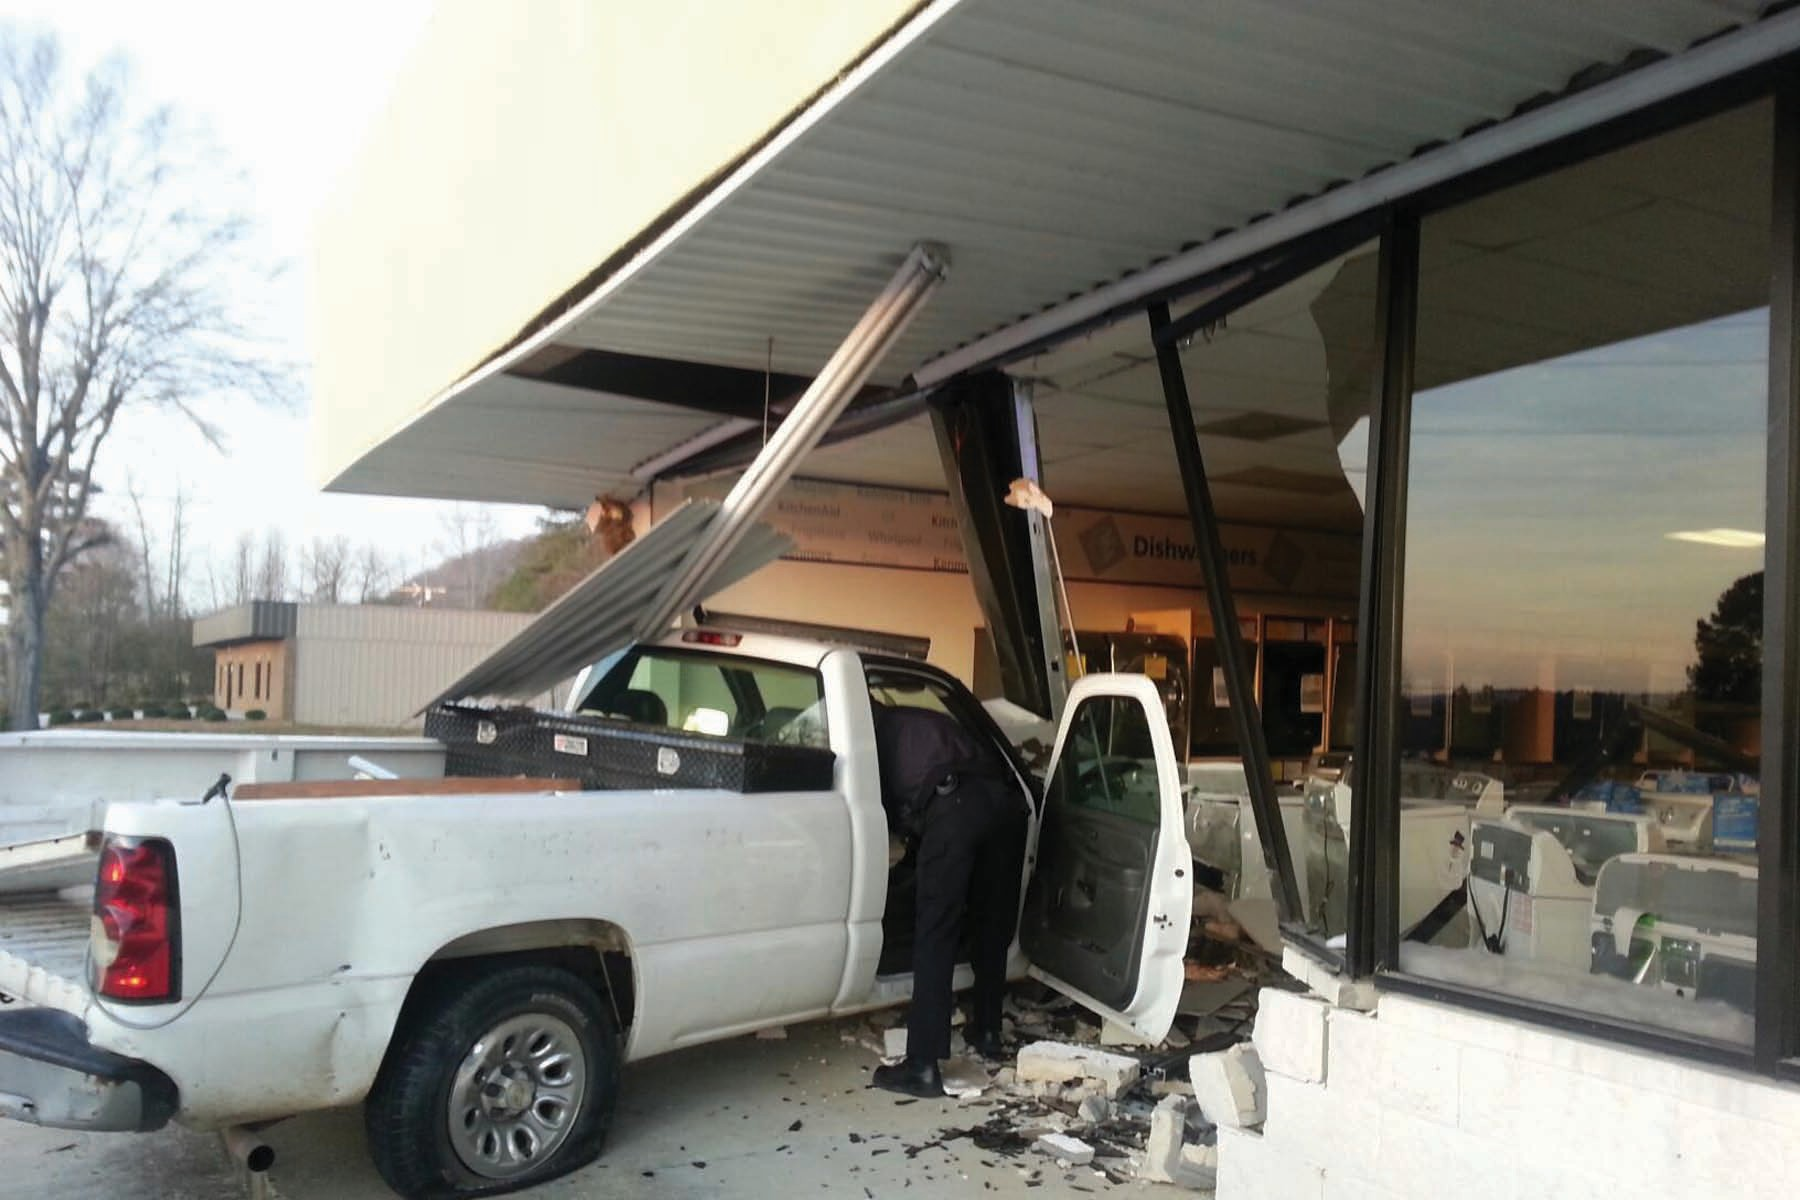 The driver of this truck lost control of his vehicle about 6:30 Sunday morning as it was headed south on Ala 75 in front of Hometown Bank. The truck left the road, jumped a ditch, and went across the parking lot before slamming into the front of Sears. The driver was taken to the hospital and treated for minor injuries, according to authorities. The building suffered extensive damage and approximately $20,000 in merchandise was lost, Sears owner Jeff Turner said. -Rob Rice